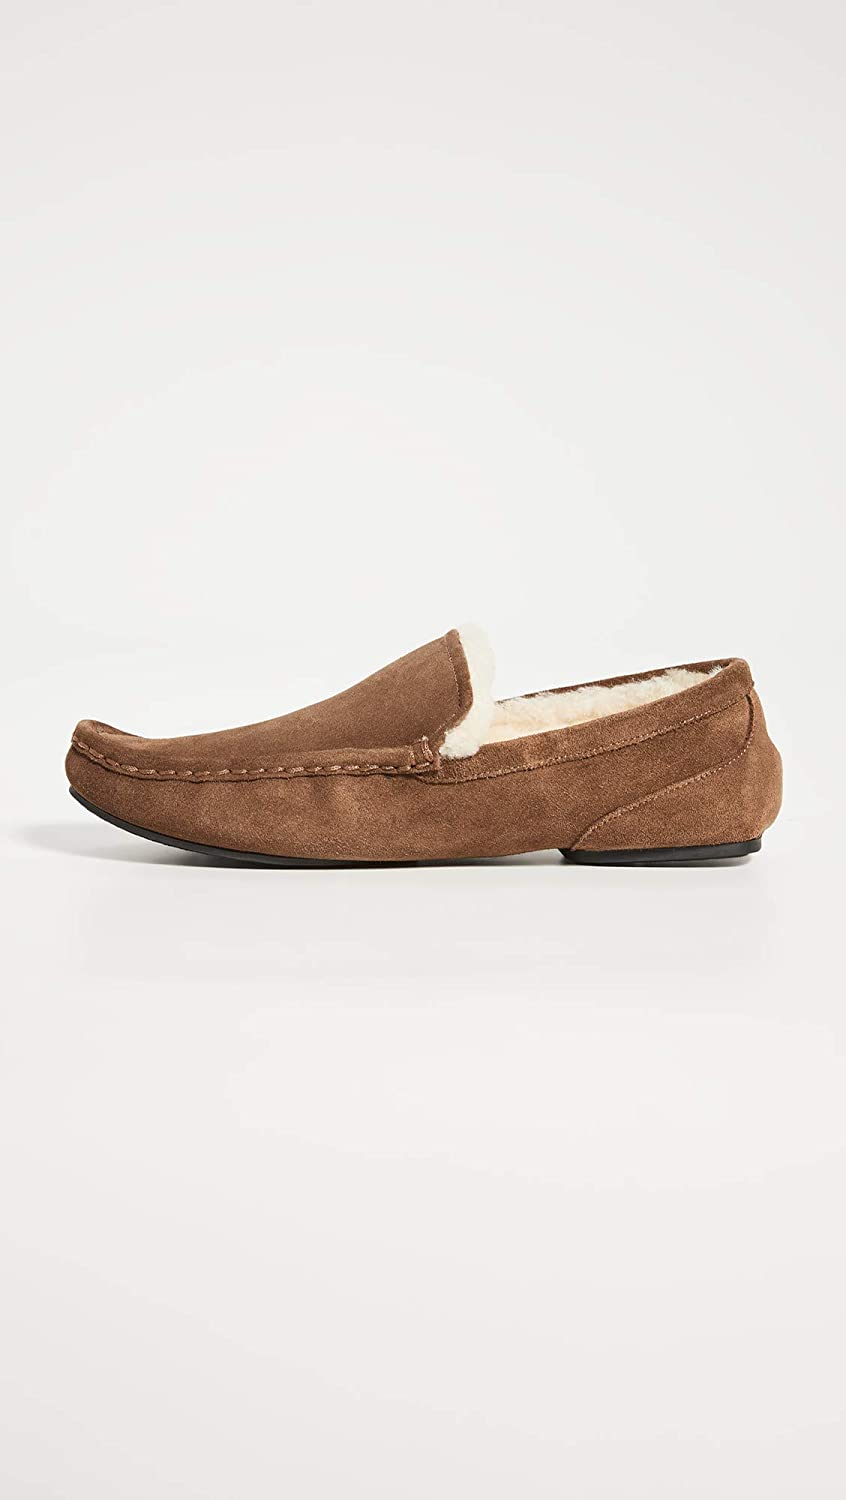 Relax Suede Moccasin Slipper